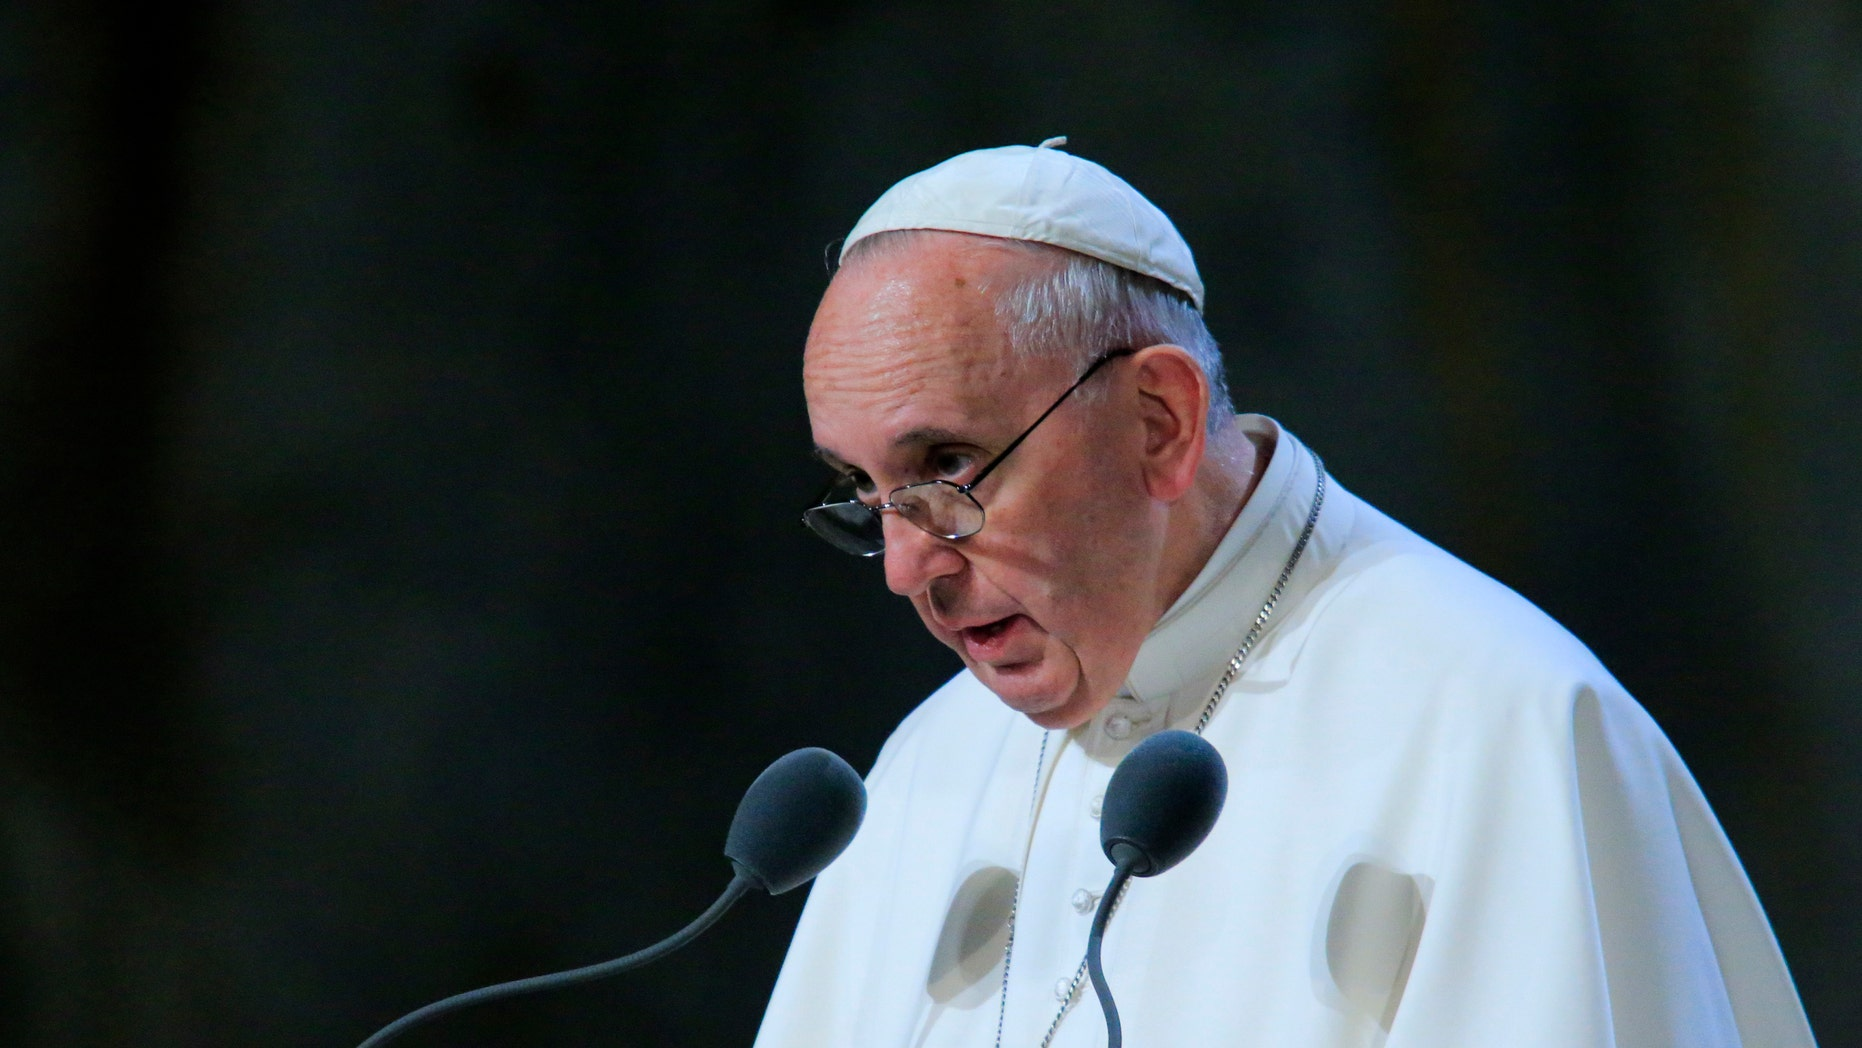 WASHINGTON, DC - SEPTEMBER 25: Pope Francis speaks to attendees inside of the 9/11 Memorial Museum September 25, 2015 in New York City. Pope Francis is on a six-day trip to the United States, which includes stops in Washington DC, New York and Philadelphia.   (Photo by Eduardo Munoz-Pool/Getty Images)